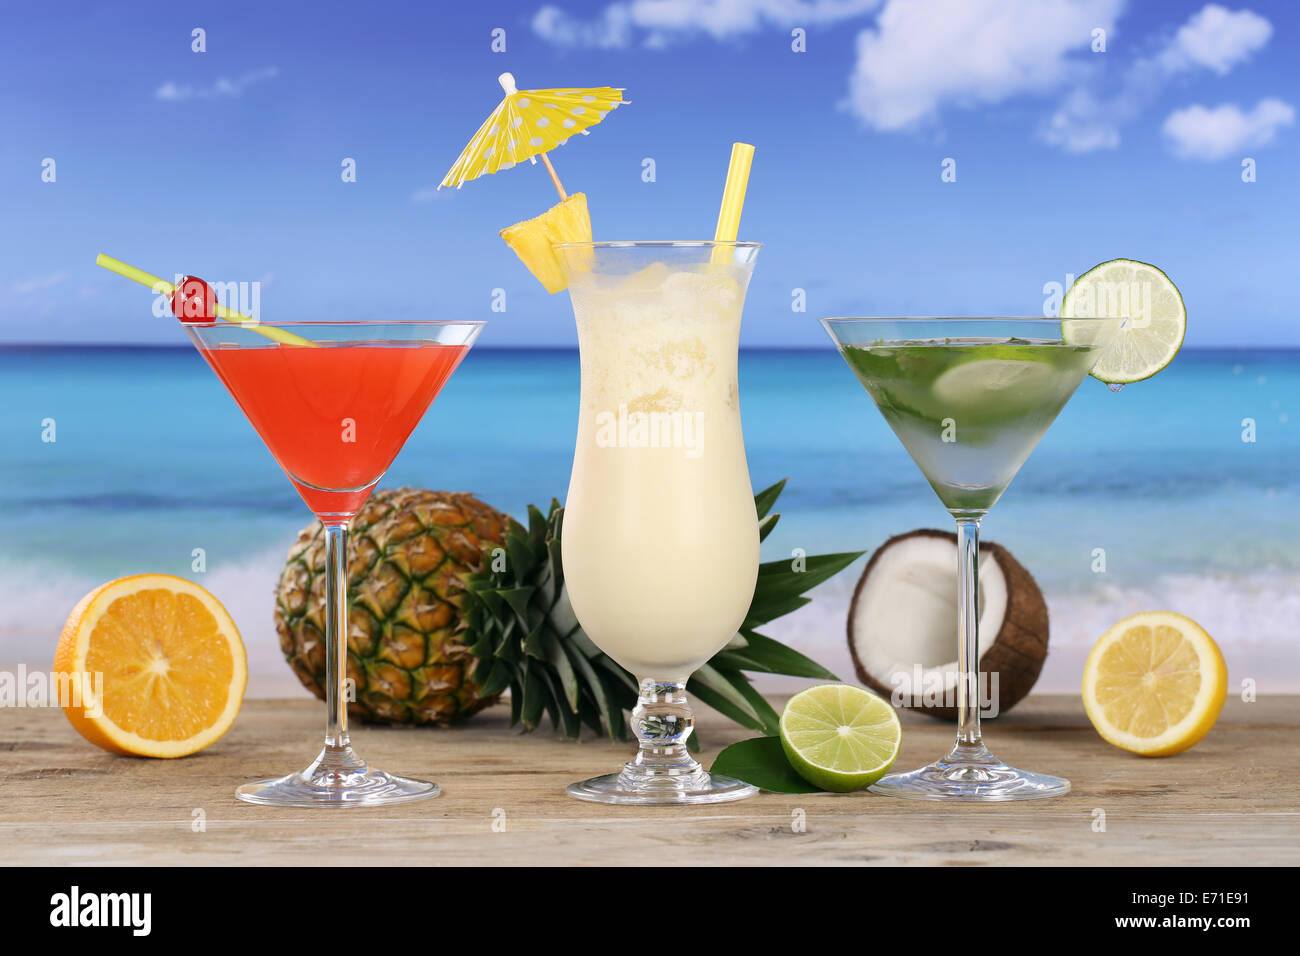 Cocktails and drinks like Pina Colada and Martini on the beach and sea - Stock Image